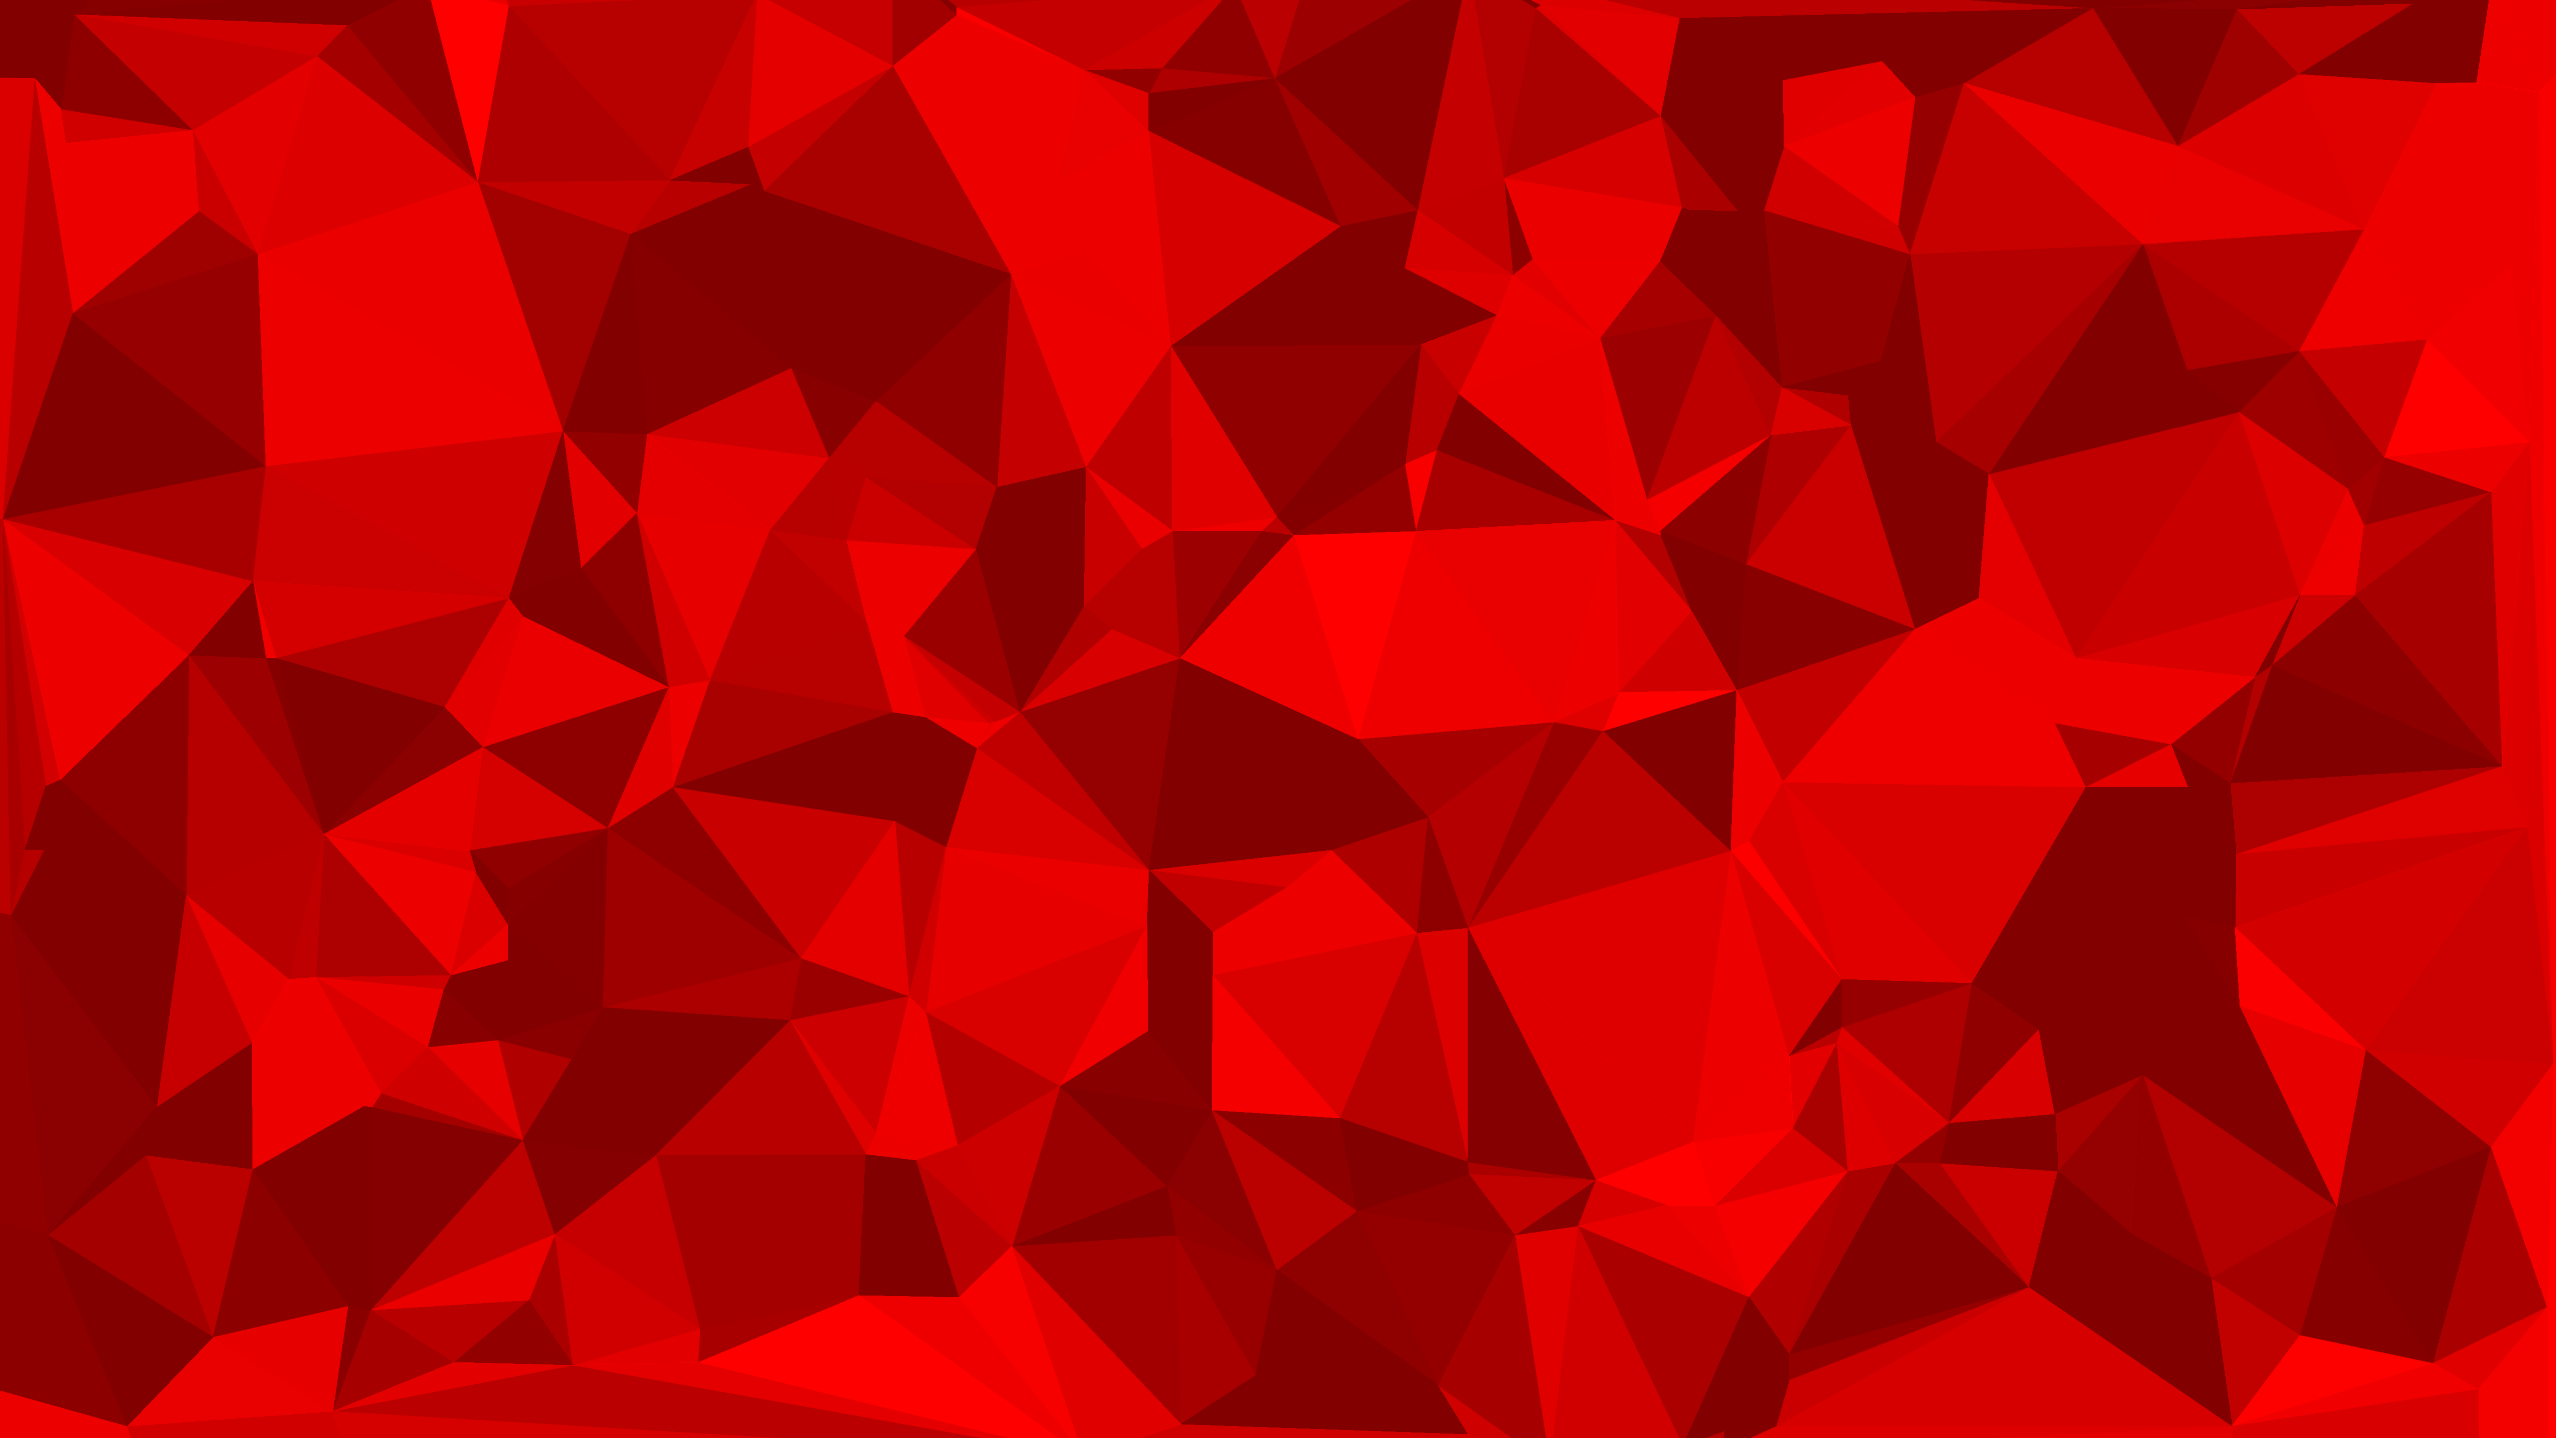 UHD Red Wallpapers - Los mejores fondos UHD Red gratis - WallpaperAccess